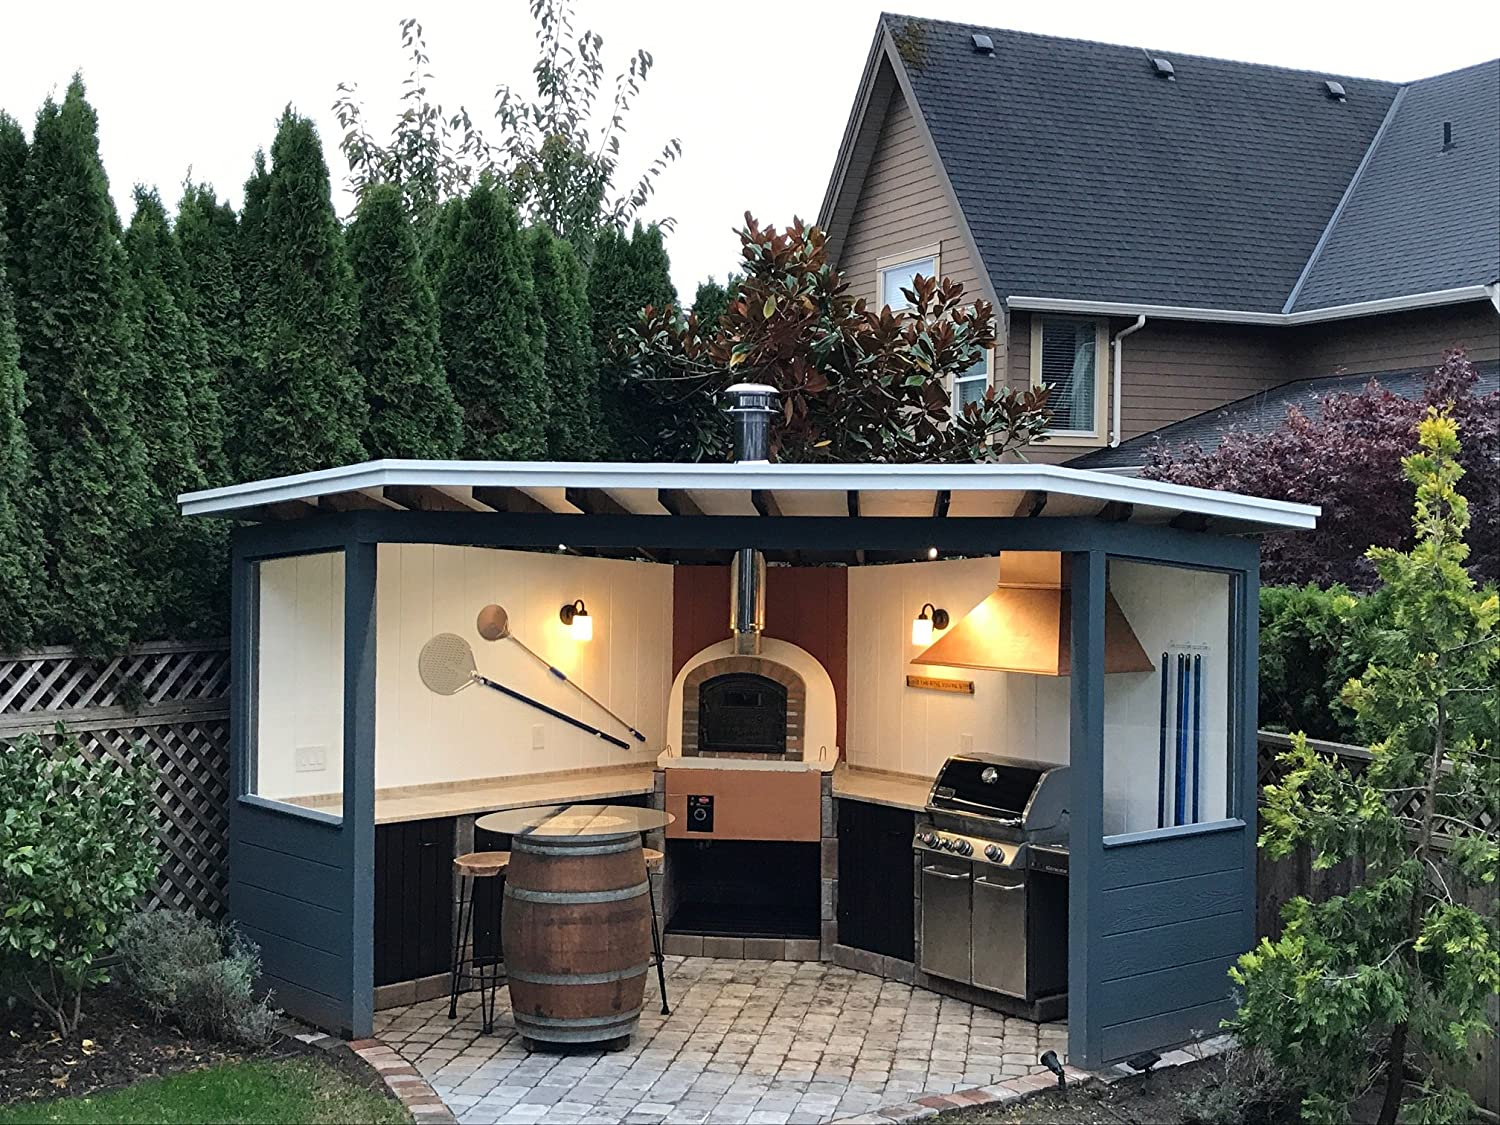 Brick Pizza Oven, Insulated, Wood Fired, Handmade in Portugal, Brick or Stone Face (Other)